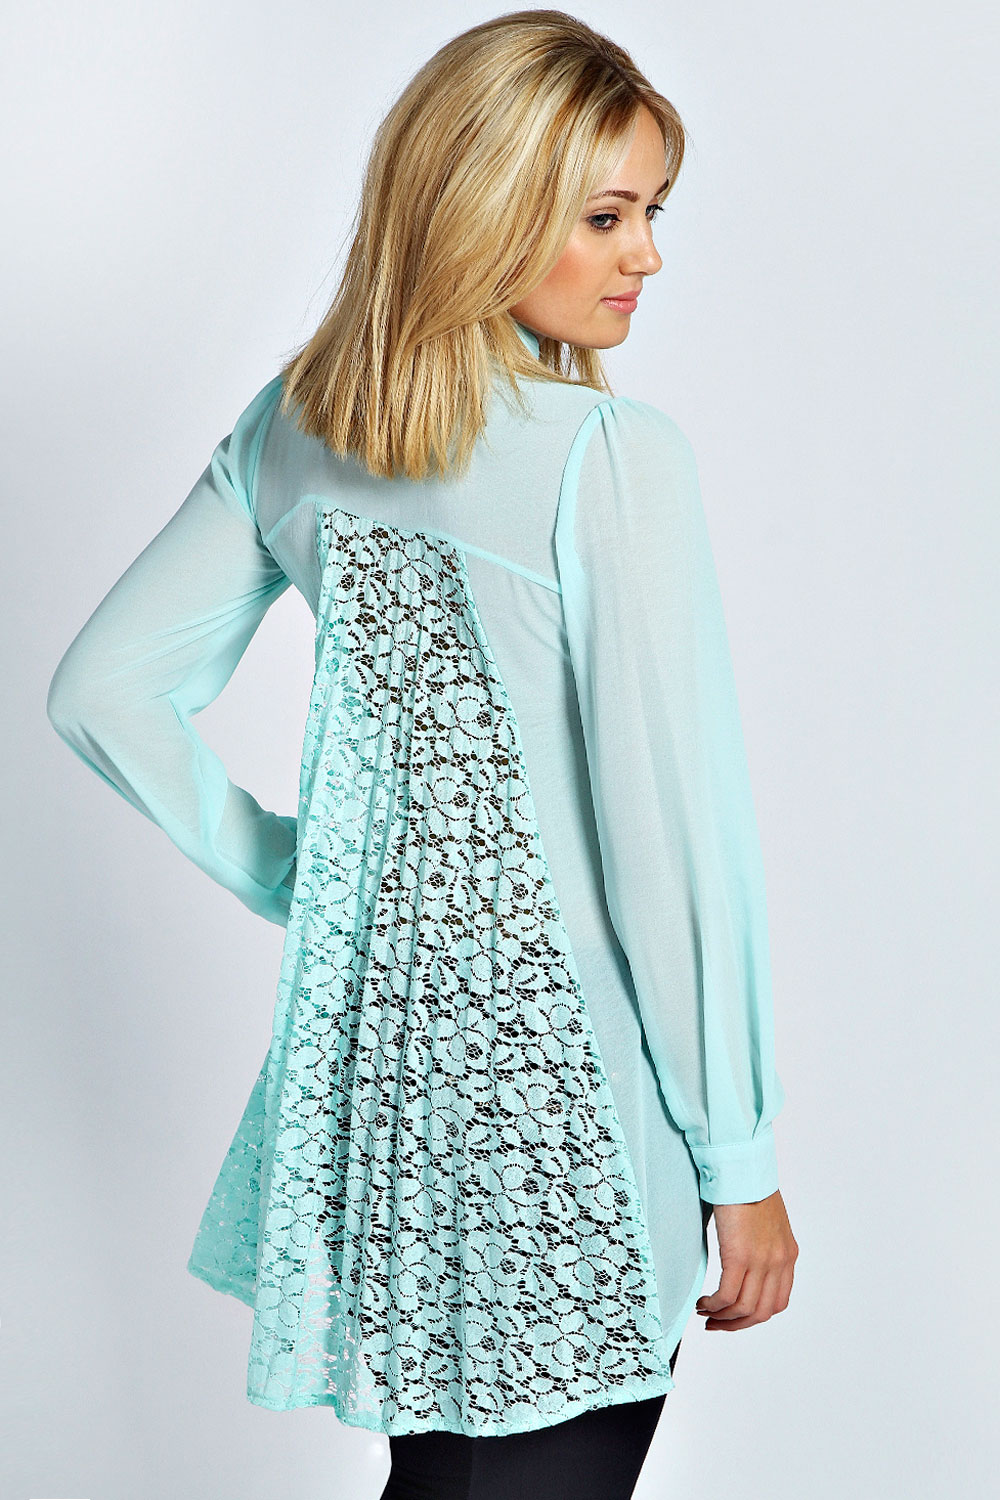 boohoo Eleanor Pleated Lace Back Blouse - mint product image